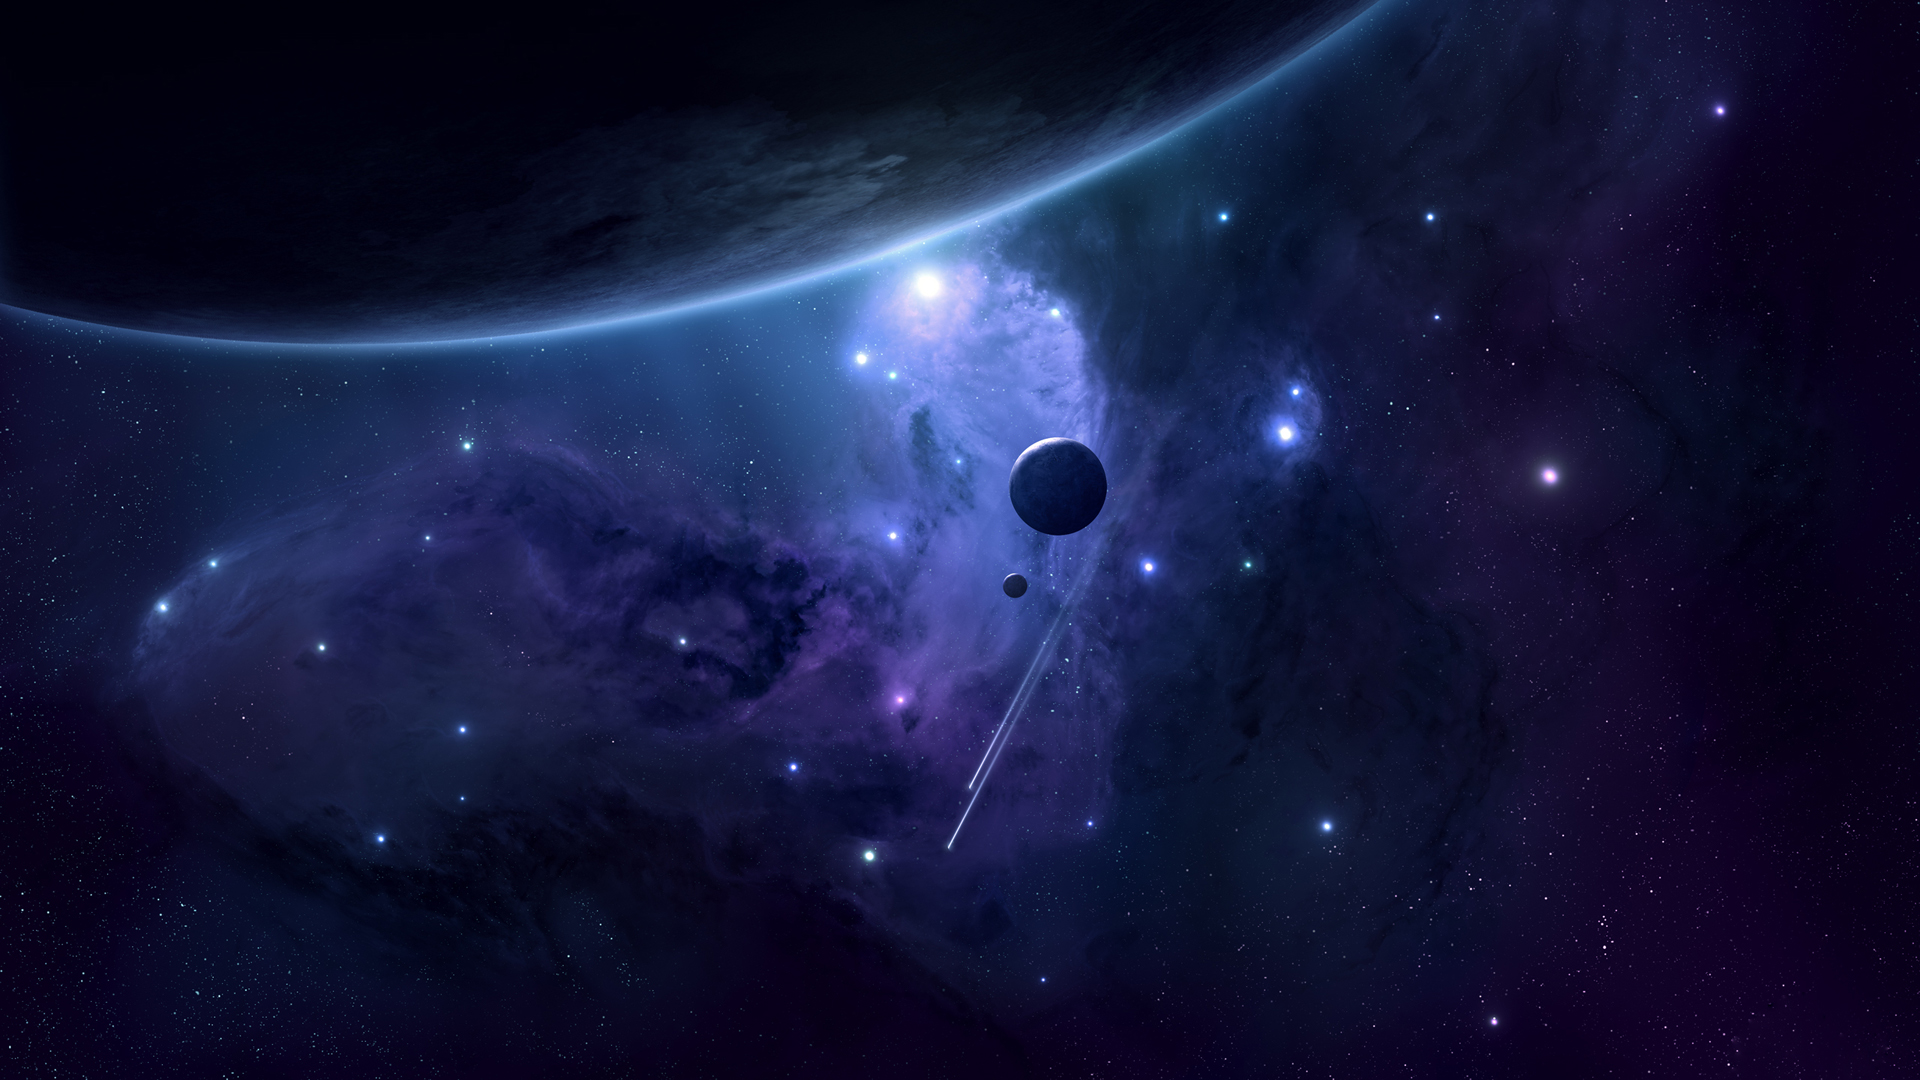 Space HD wallpaper 1920x1080 39   hebusorg   High Definition 1920x1080